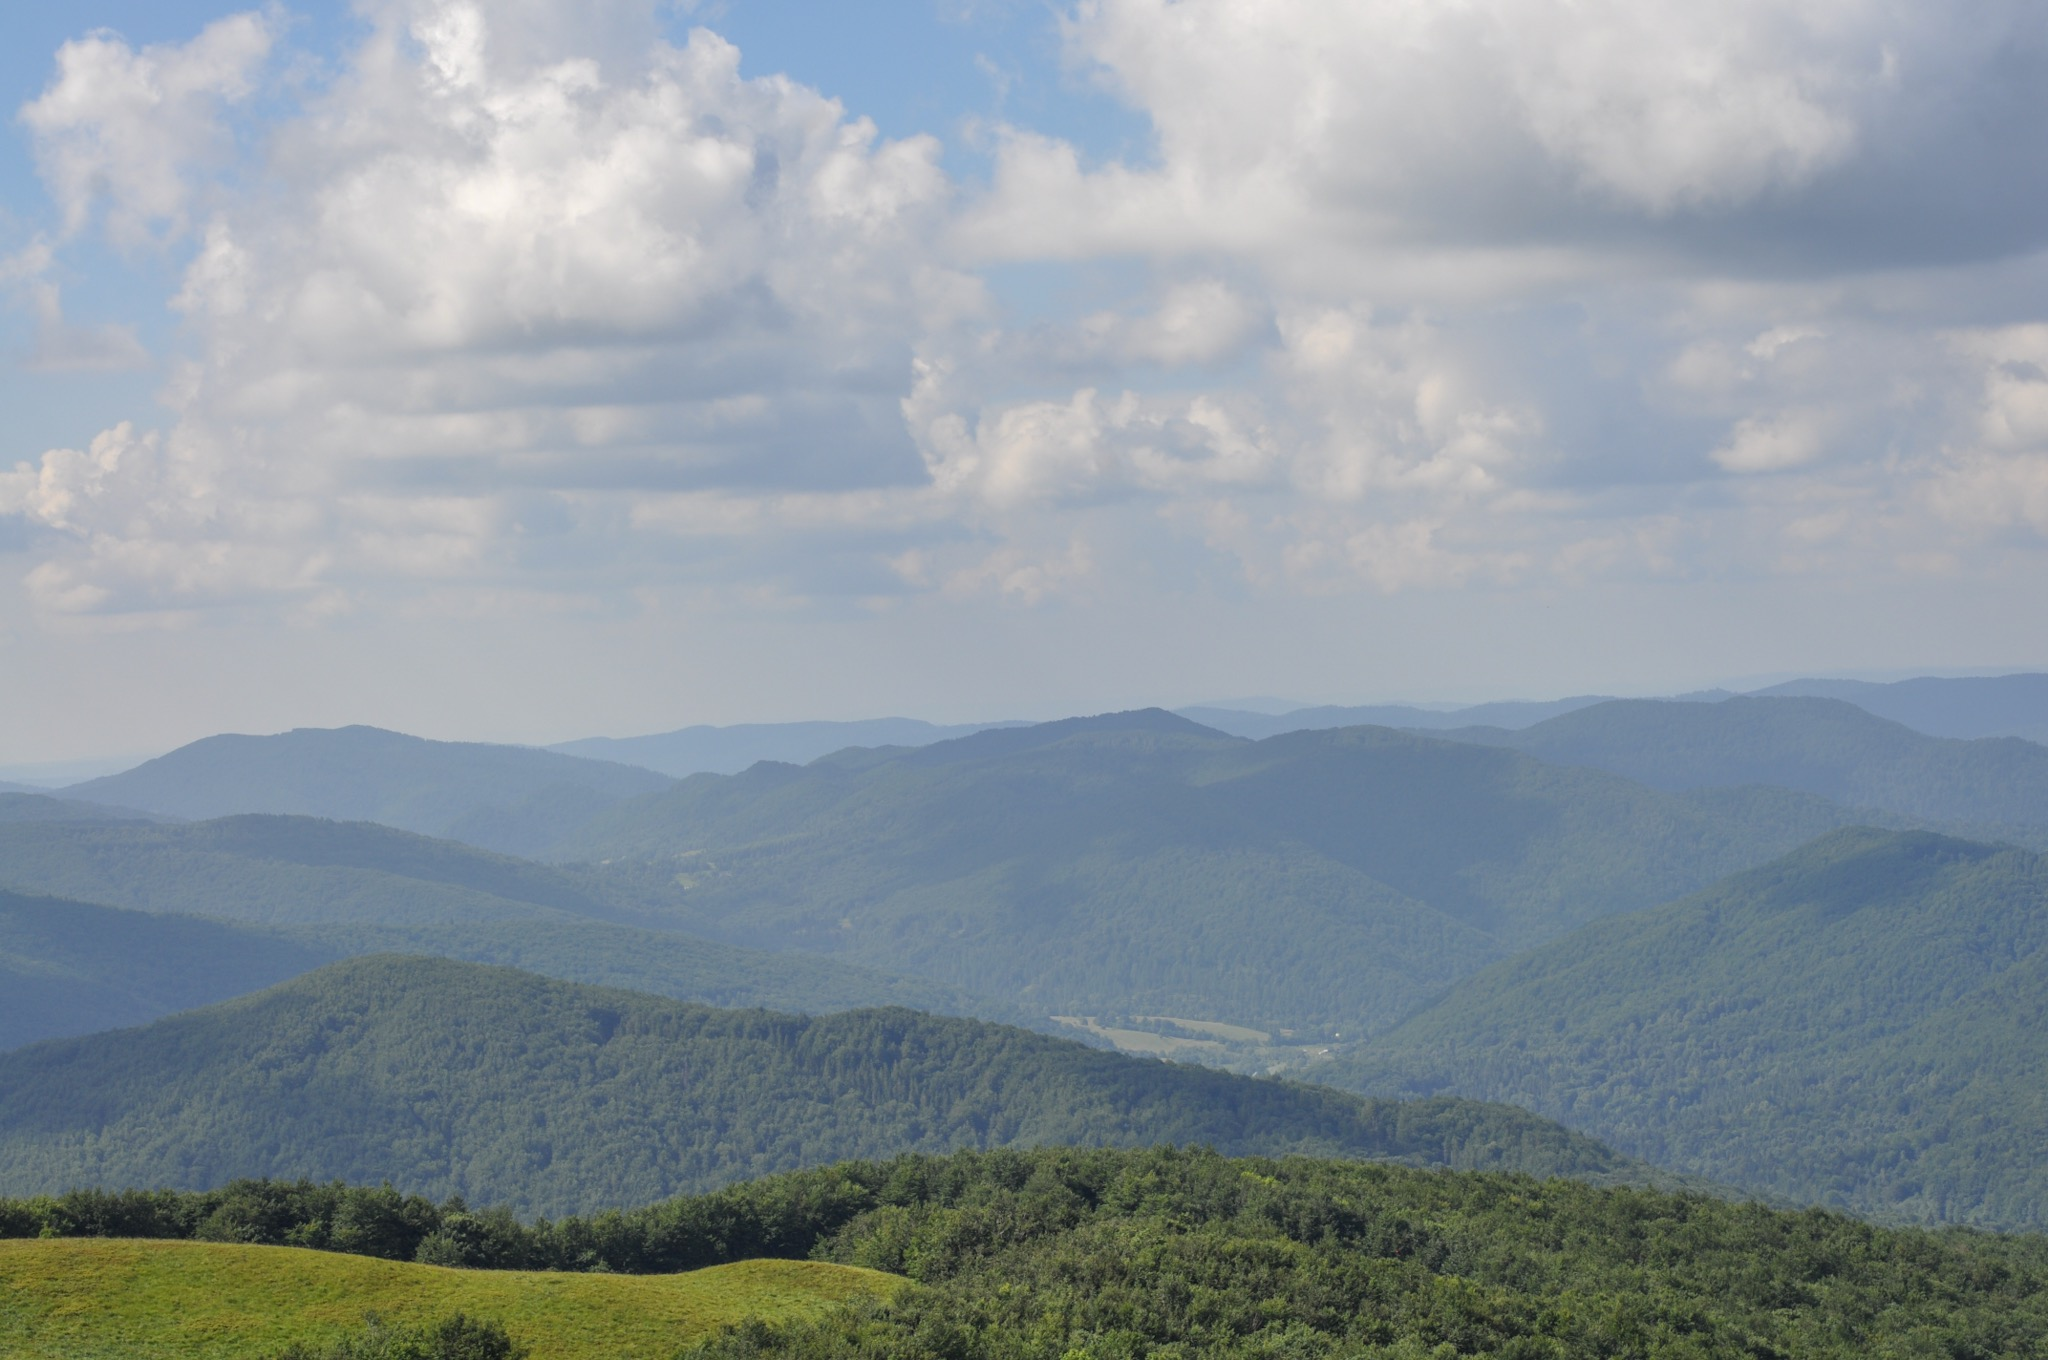 Bieszczady National Park mountains and valleys